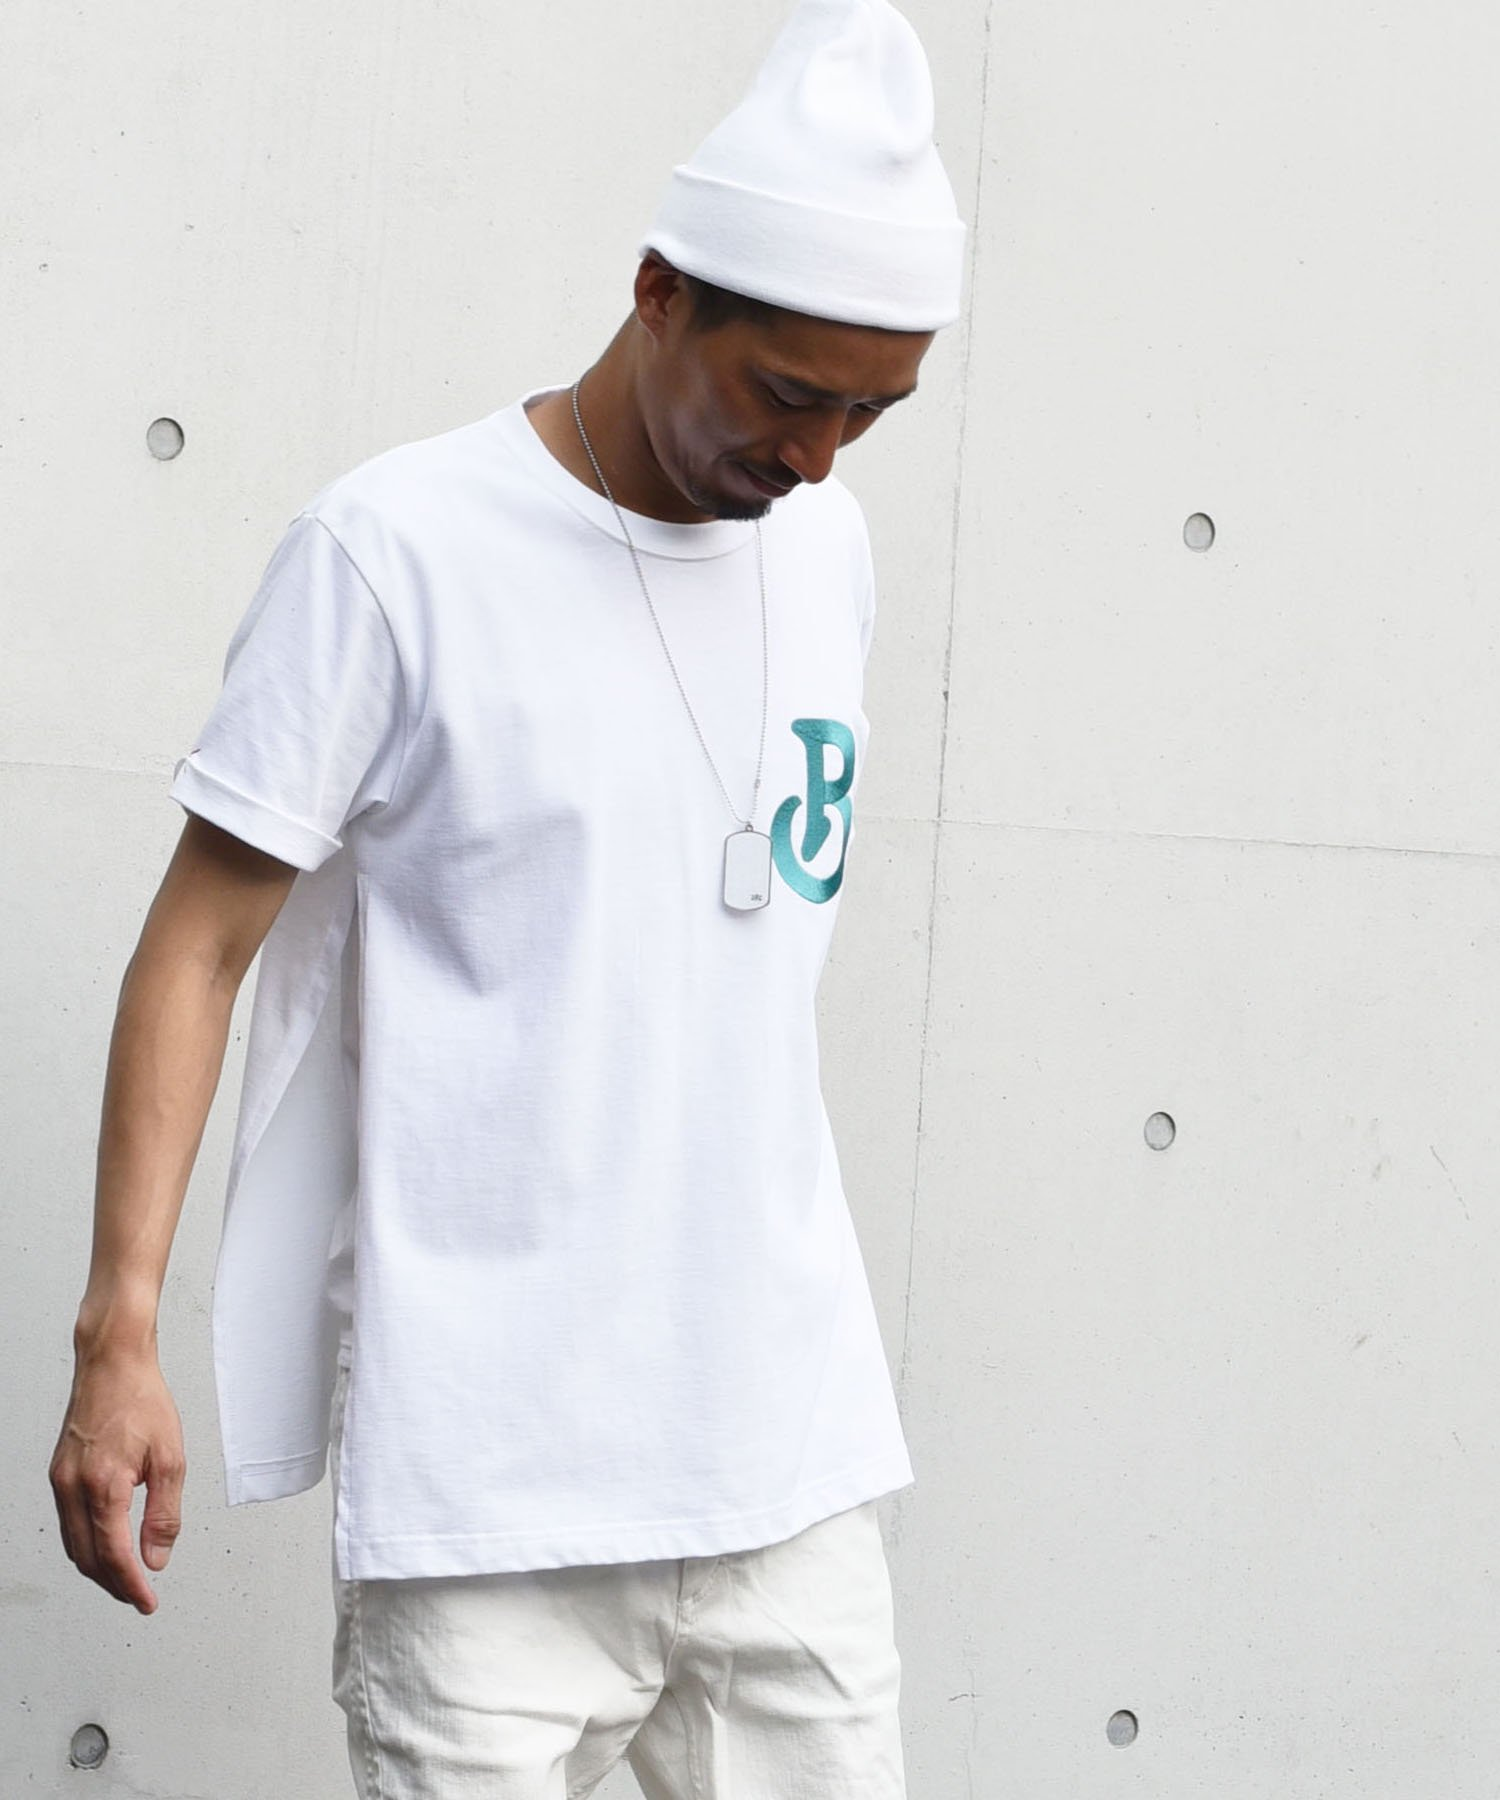 20% Burnout(バーンアウト)ANTI-HEROIC HERO T-Shirt